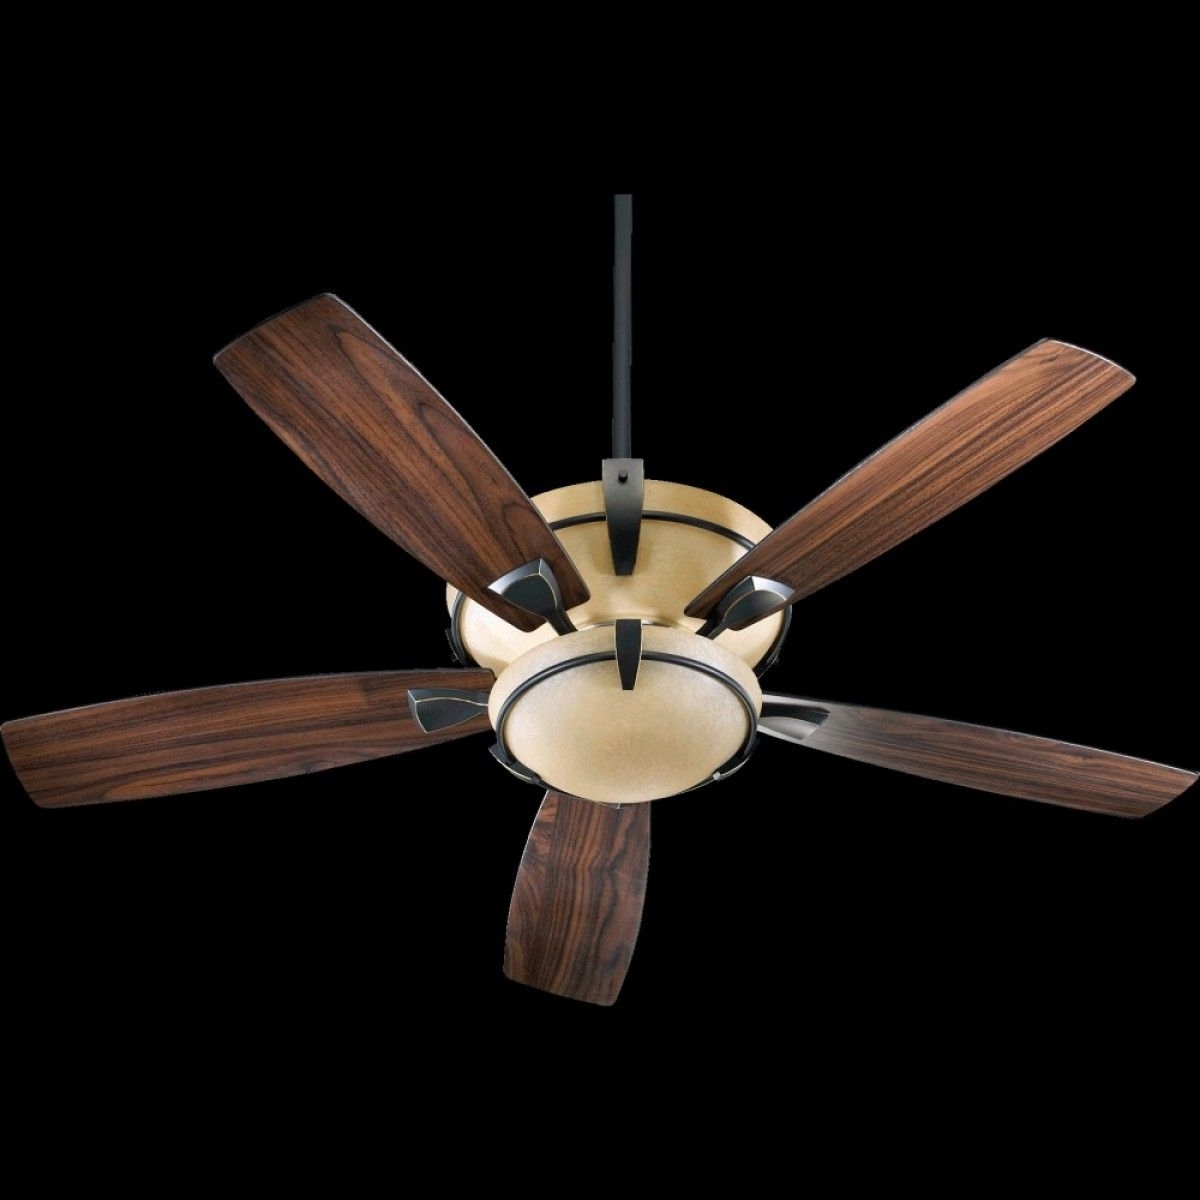 Outdoor Ceiling Fans With Uplights Intended For Well Known Ceiling, Charming Ceiling Fans With Uplights Uplight Ceiling Fan (View 2 of 20)